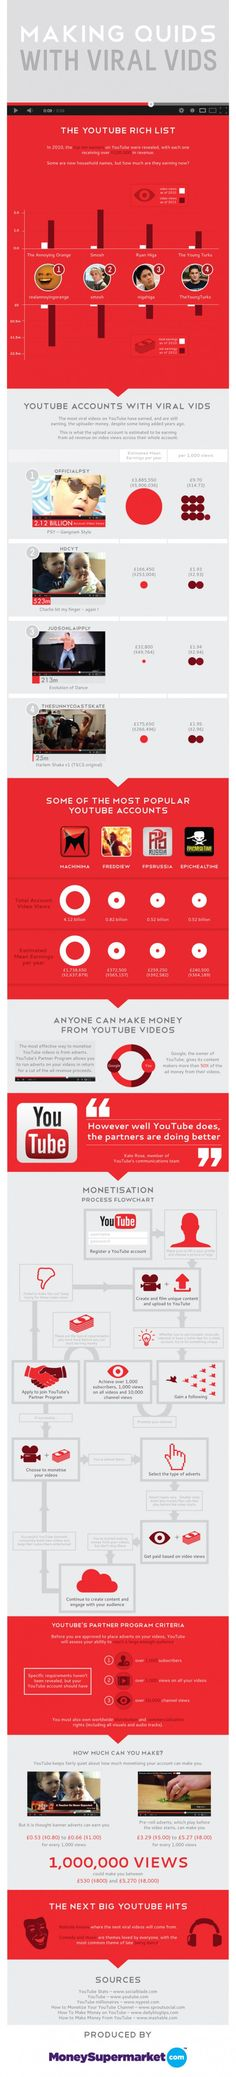 Making Quids with Viral Vids. Infographic: how to make Viral Video's. #videomarketing #marketing #infographic